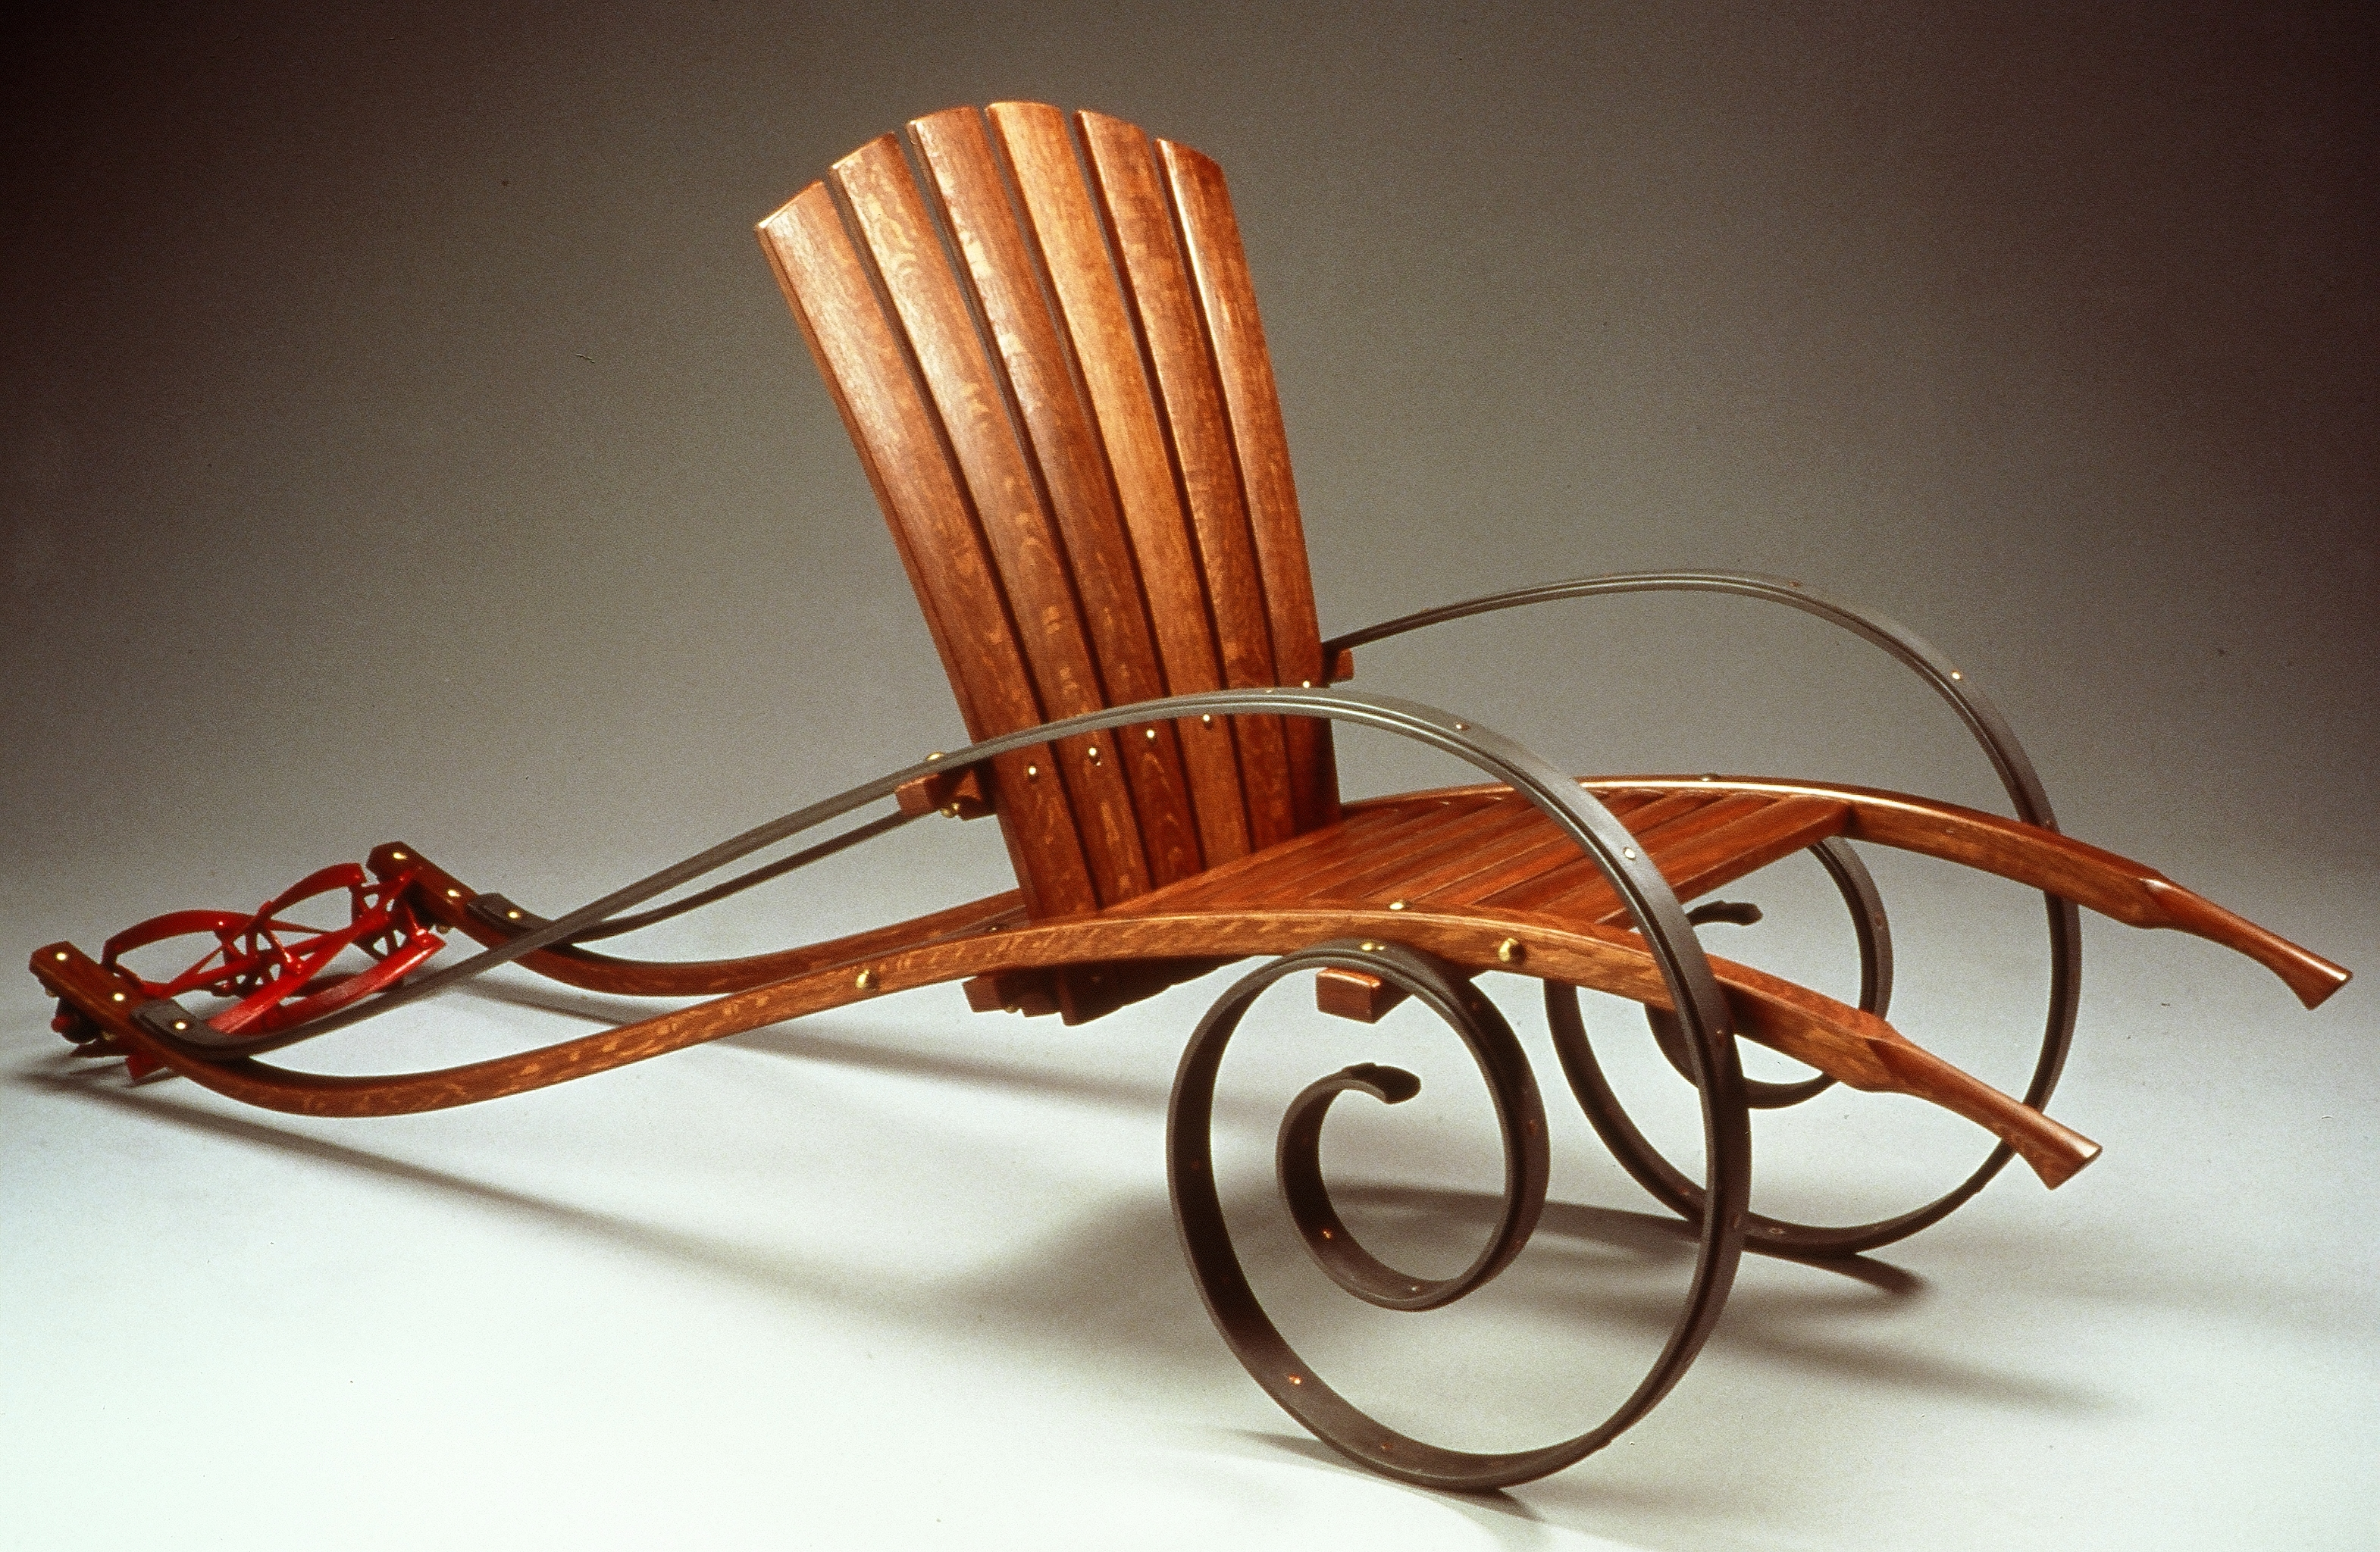 'Armchair Gardener,' by Mitch Ryerson (2000), one of the works on display at the Benton Museum in an exhibit inspired by this year's UConn Reads book selection, Game of Thrones. (Courtesy of the artist)